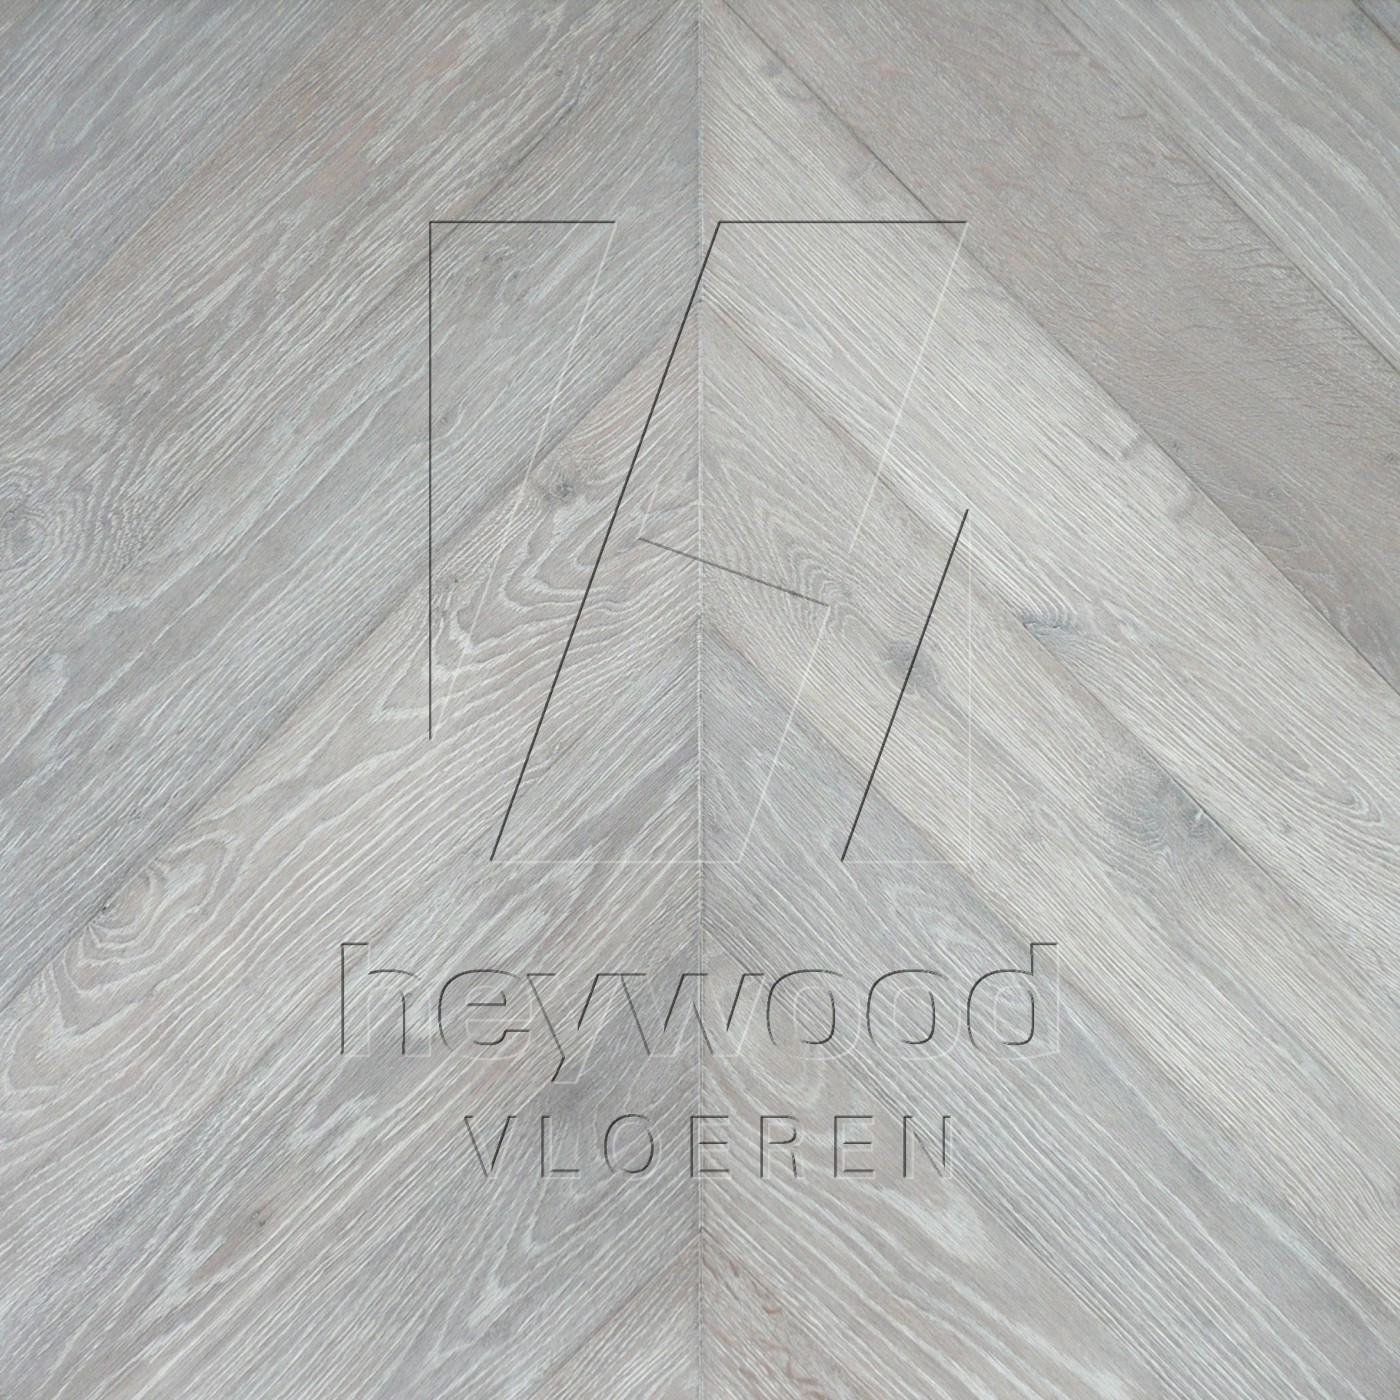 'St Andrews coloured' Chevron 45°, Bespoke Character in Chevron of Pattern & Panel Floors